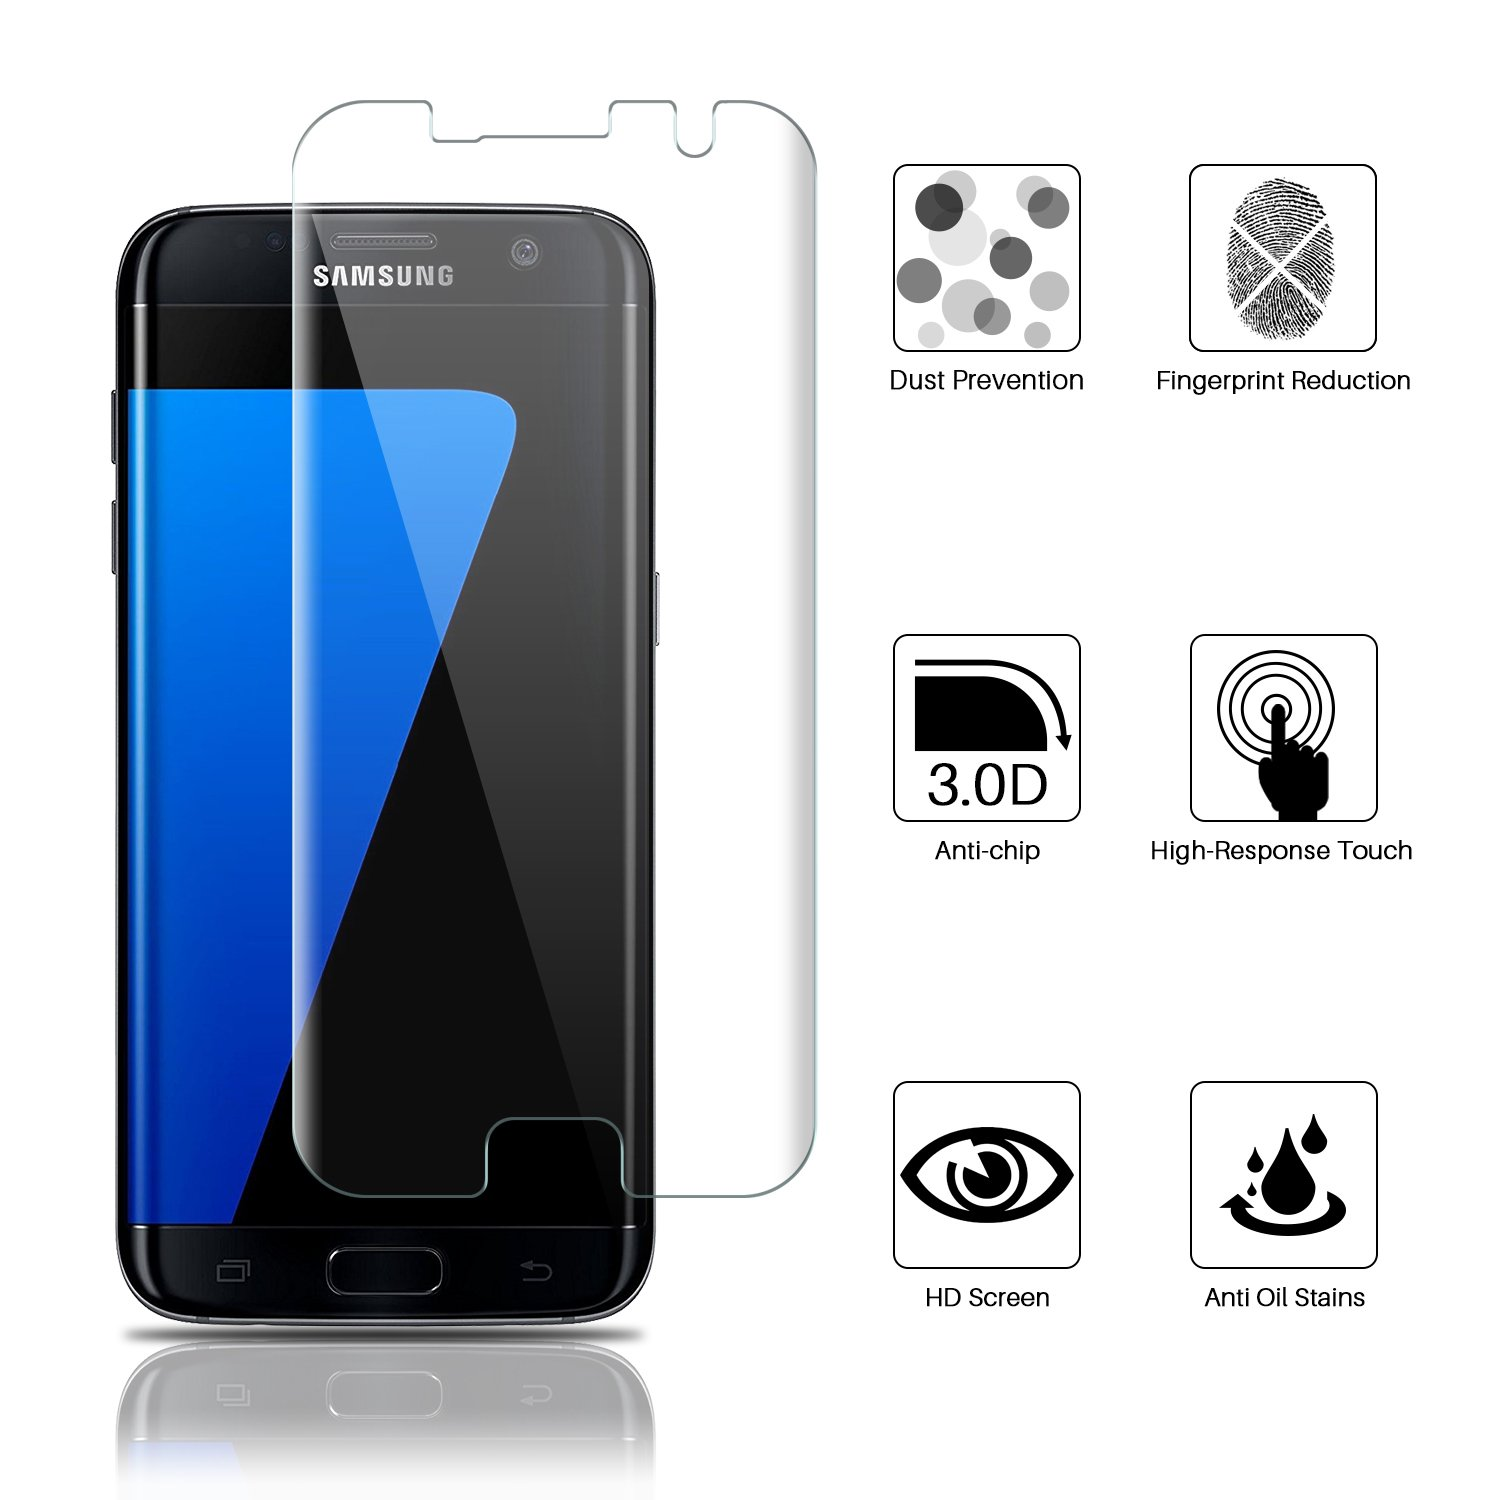 Amazon [3 Pack] Samsung Galaxy S7 edge Screen Protector LK Liquid Skin [New Version] [Full Coverage] [Bubble Free] HD Clear Flexible film with